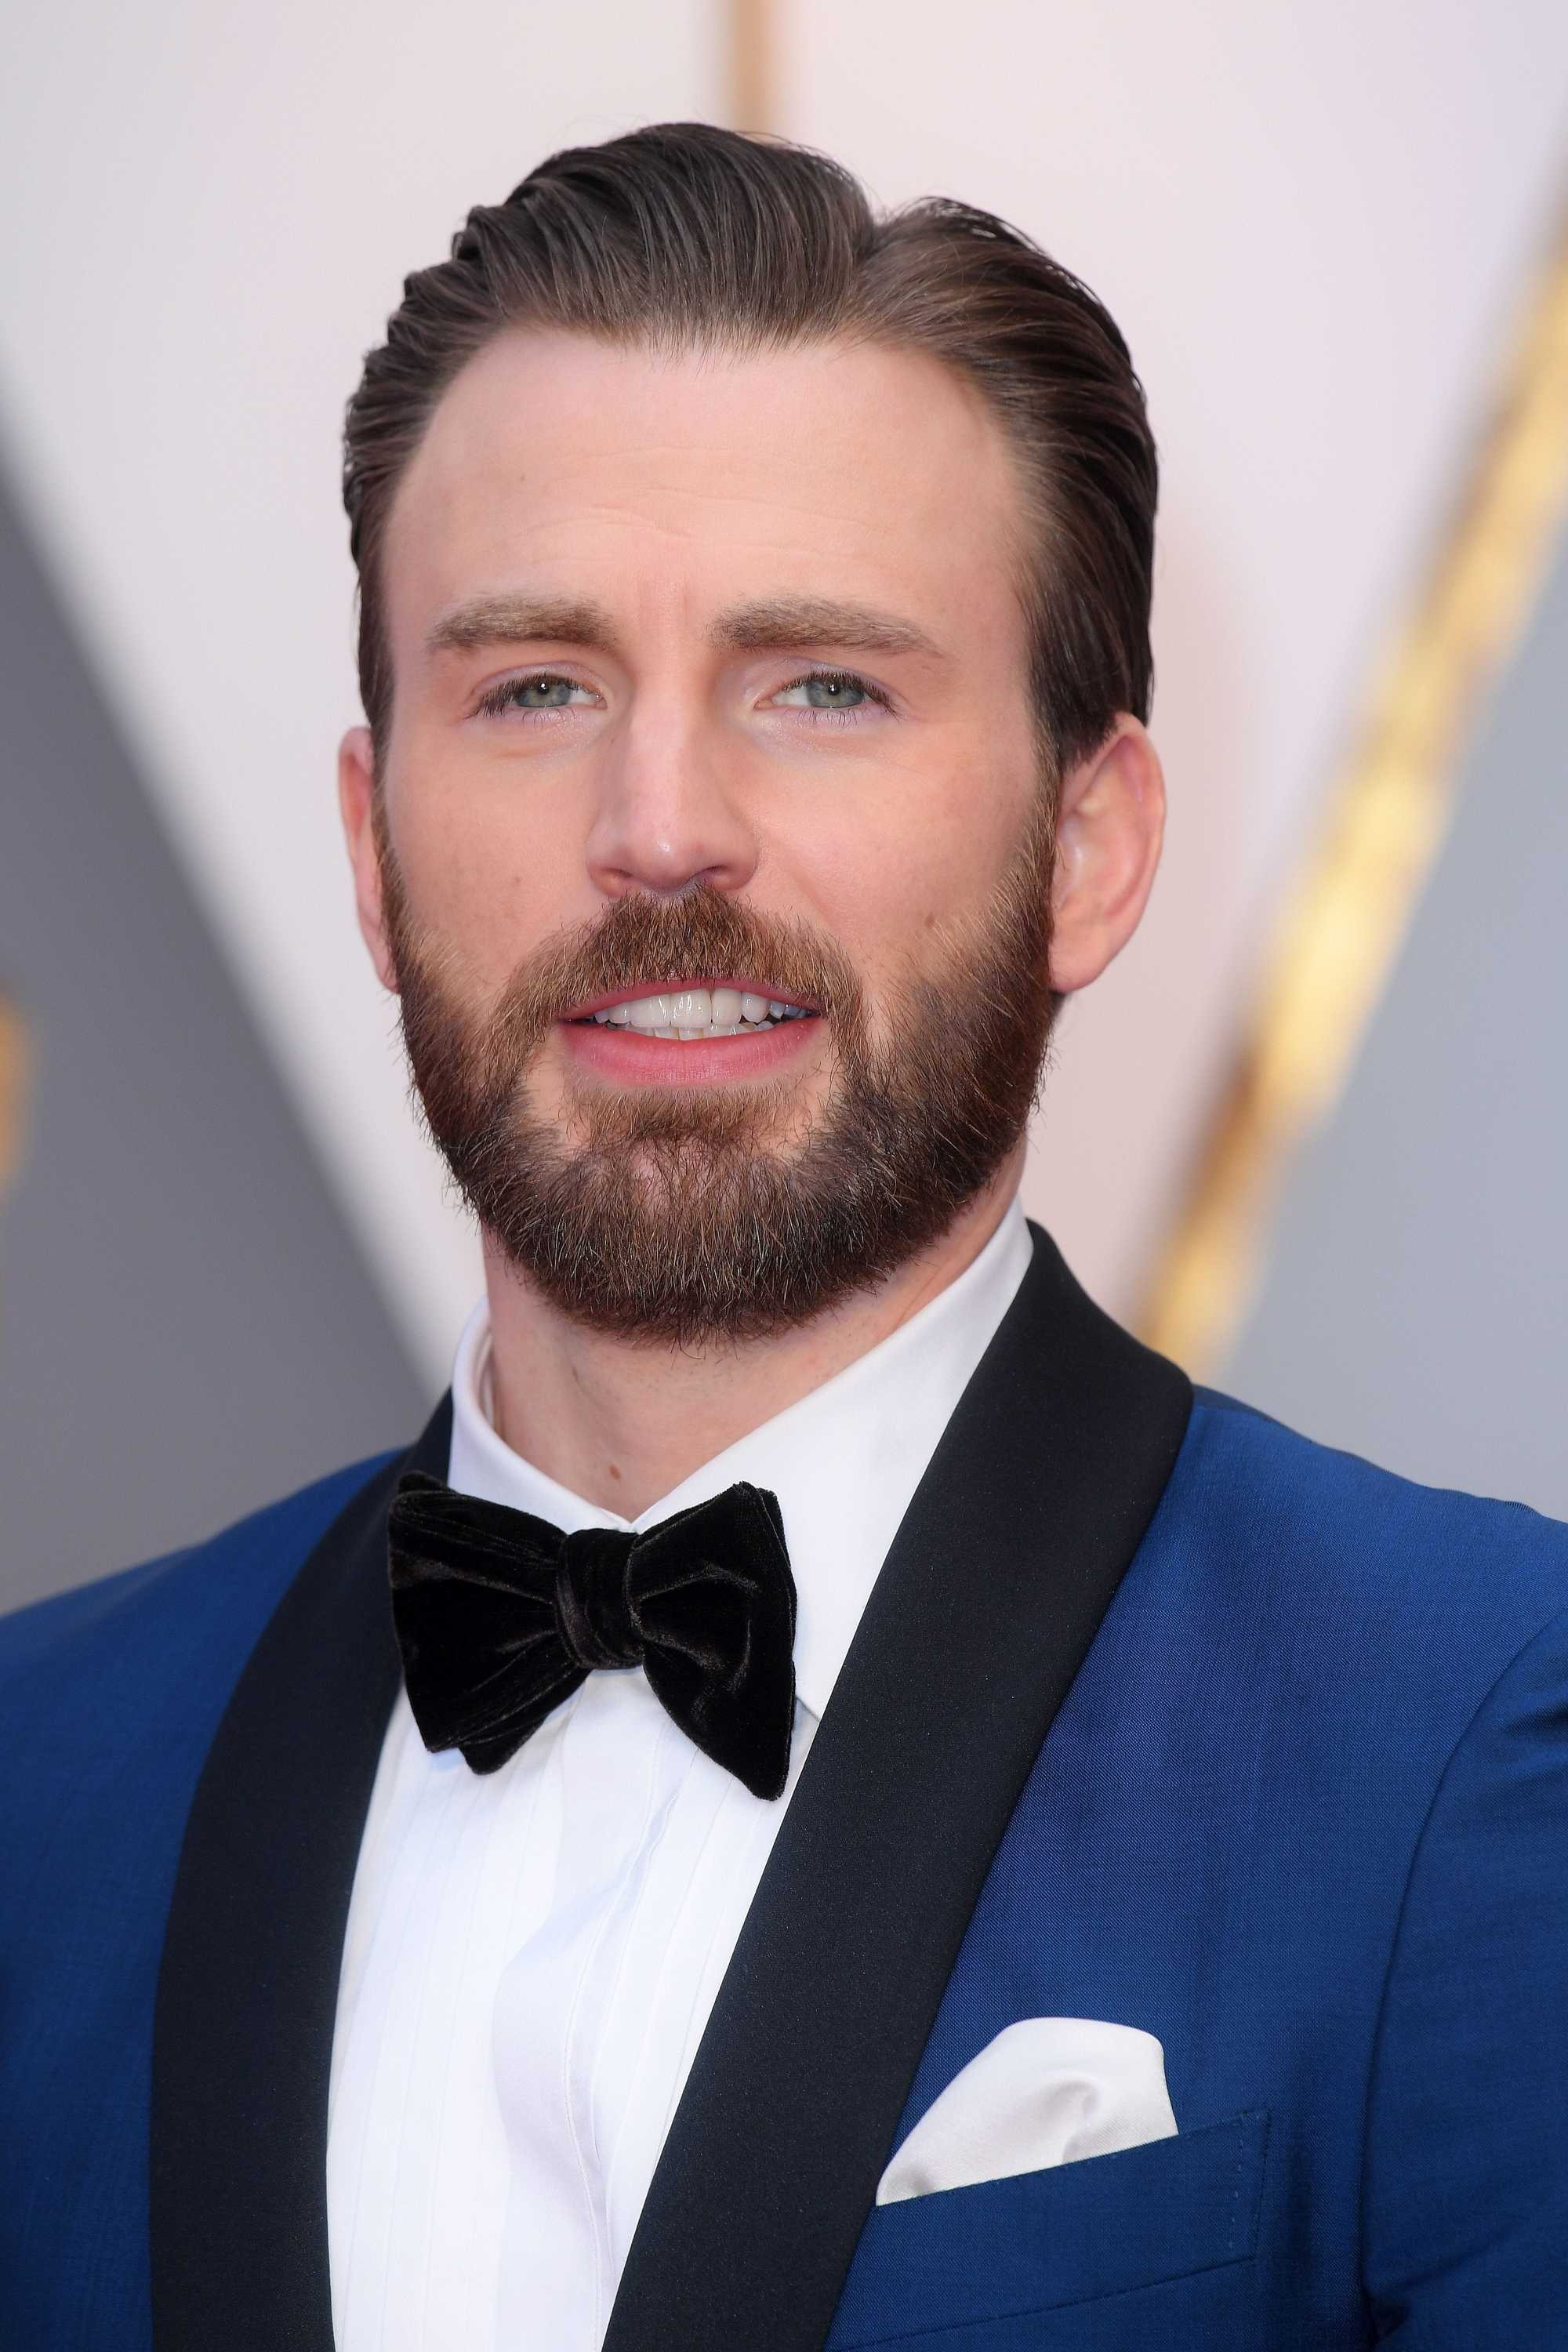 chris evans with slick side part and blue suit with bow tie